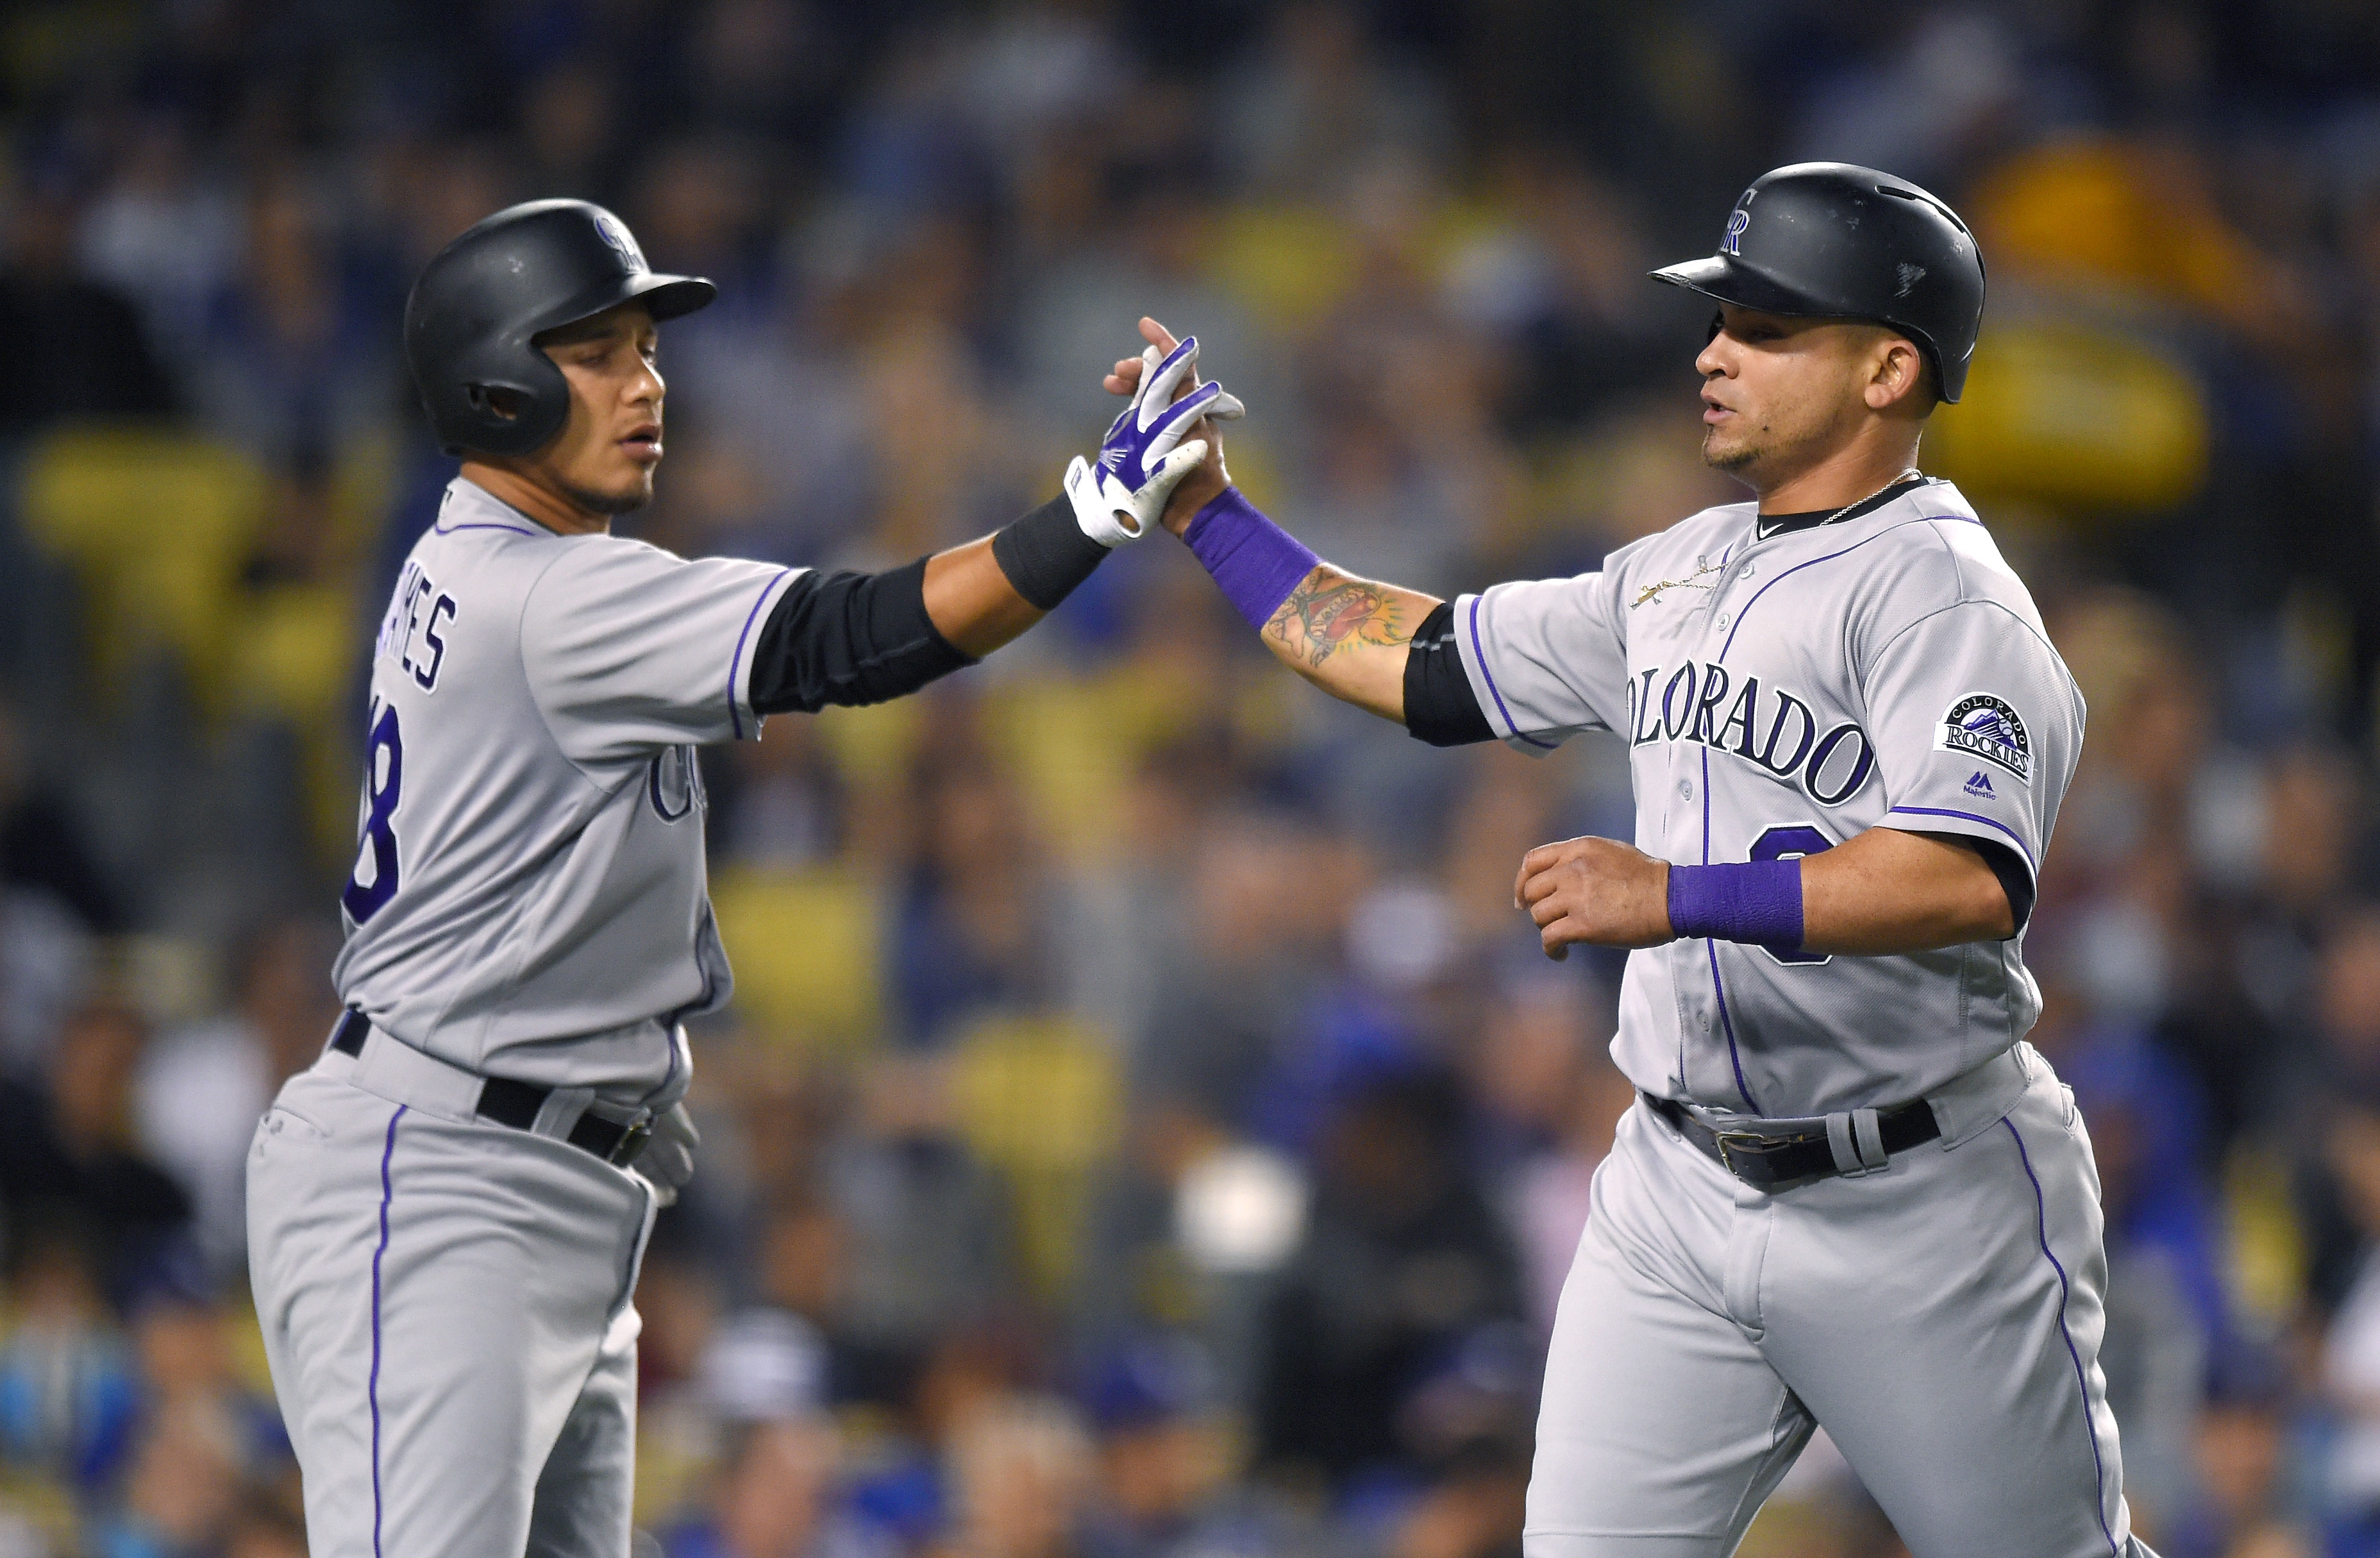 Colorado Rockies' Gerardo Parra, right, is congratulated by Cristhian Adames after scoring on a single by Daniel Descalso during the seventh inning of a baseball game against the Los Angeles Dodgers, Wednesday, June 8, 2016, in Los Angeles. (AP Photo/Mark